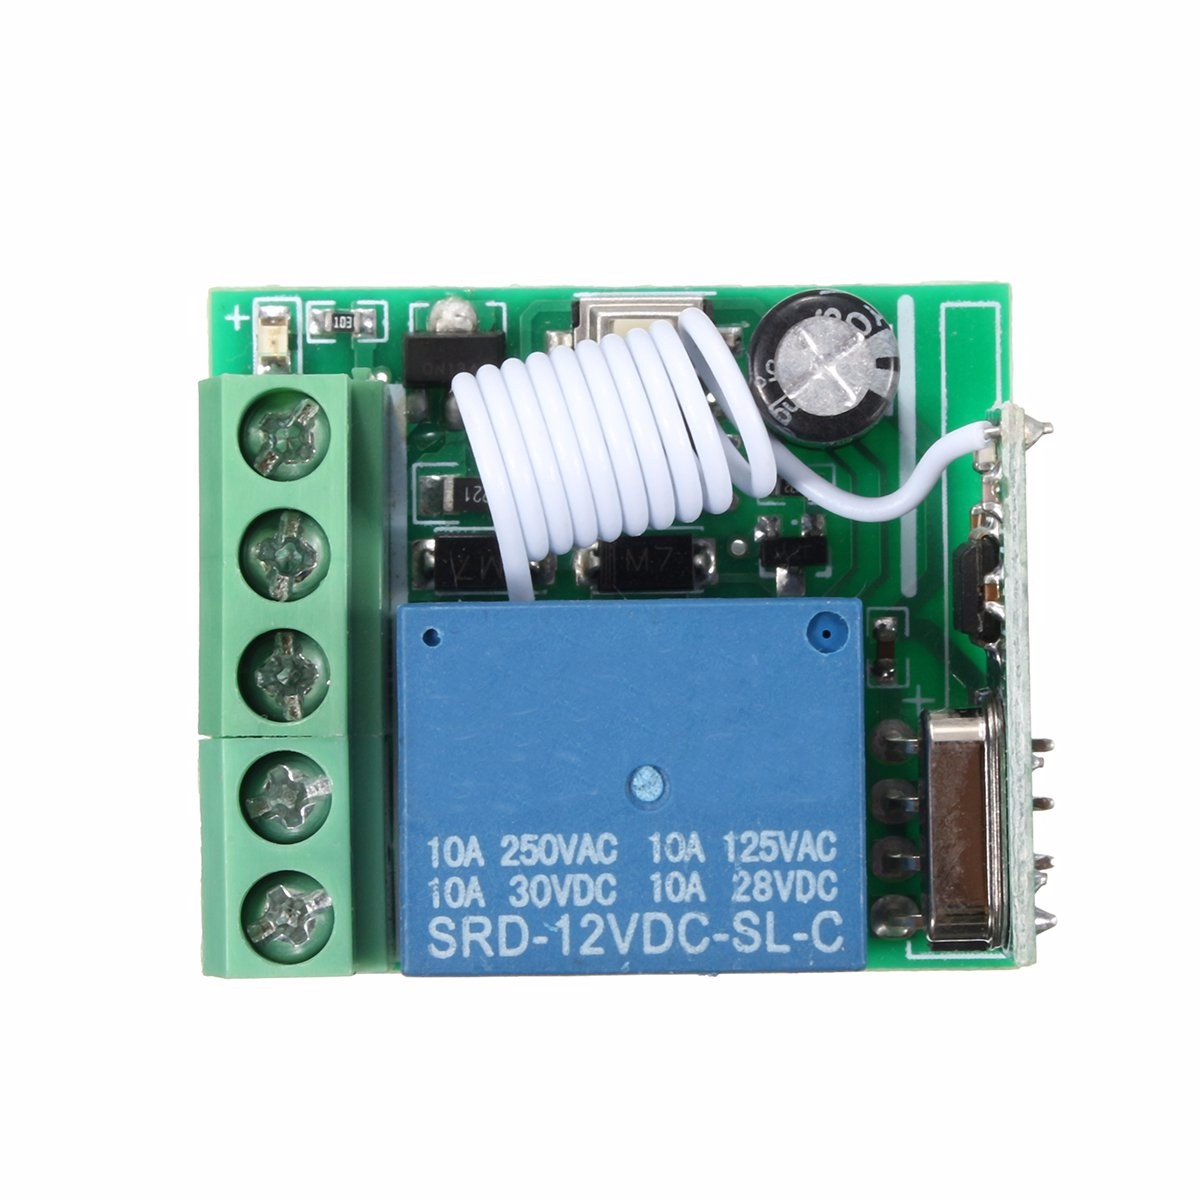 Hot 315mhz 12v 1 Channel Power Supply Wireless Remote Control Relay Switch Self Lock Rc In Relays From Home Improvement On Alibaba